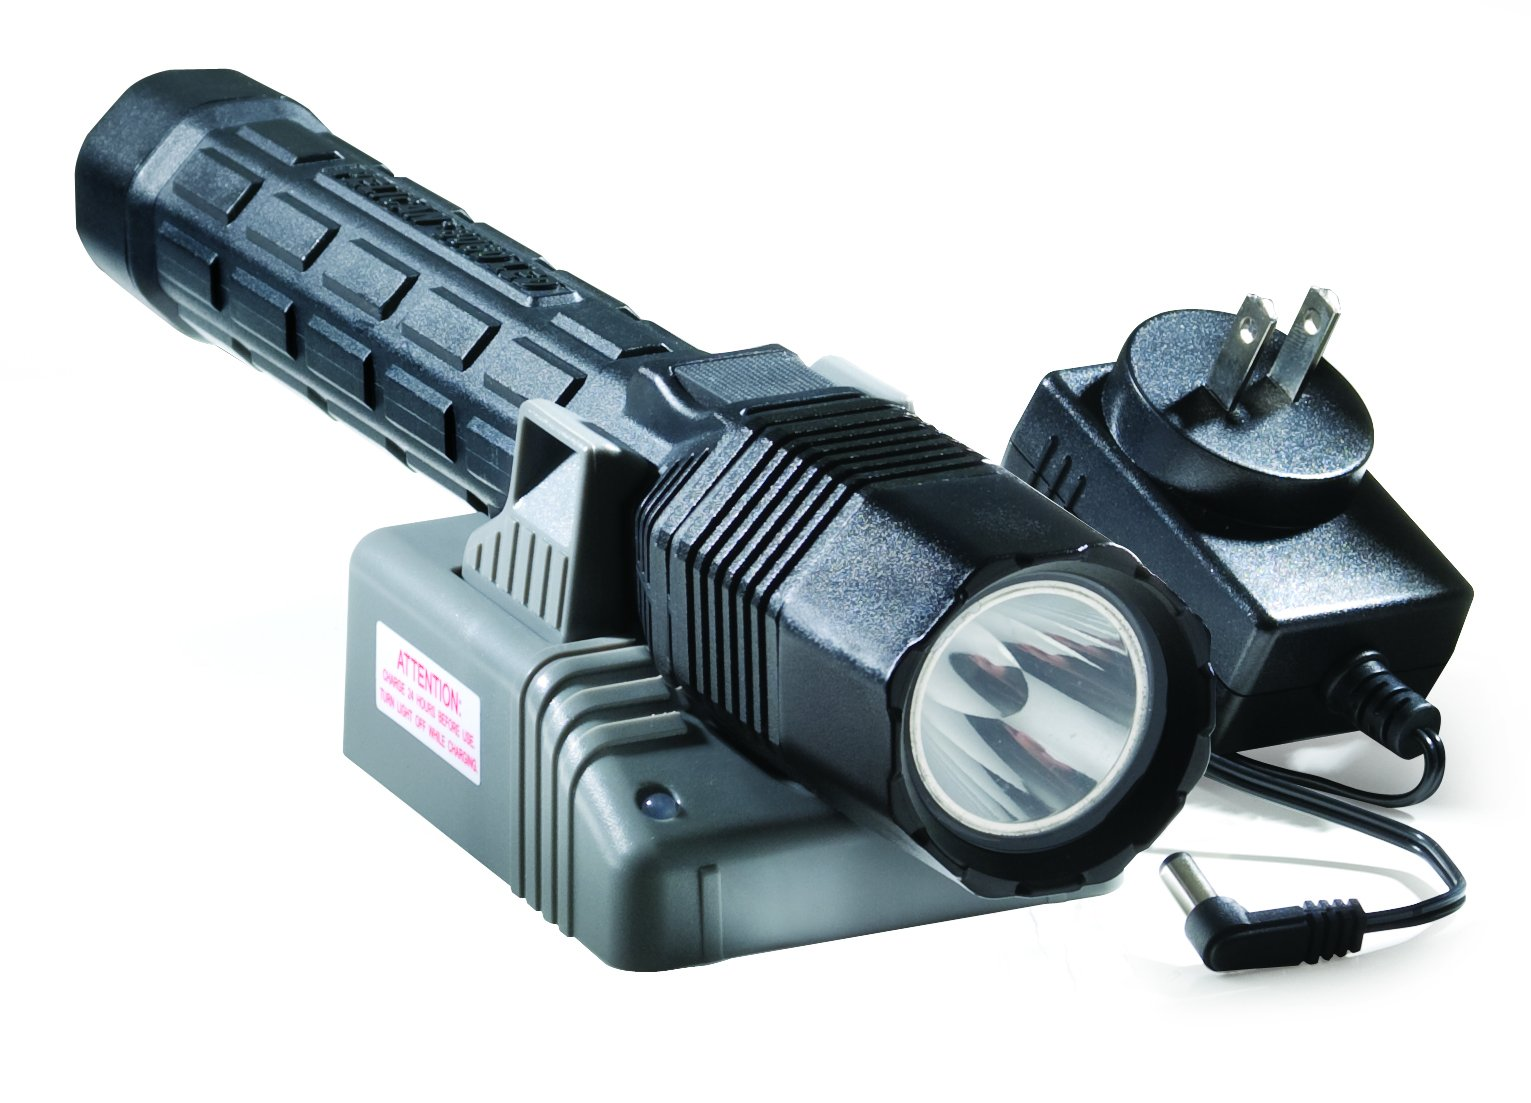 NEW High 803 Lumens Pelican 8060 - 3 settings. With charger. Sold by CVPKG.